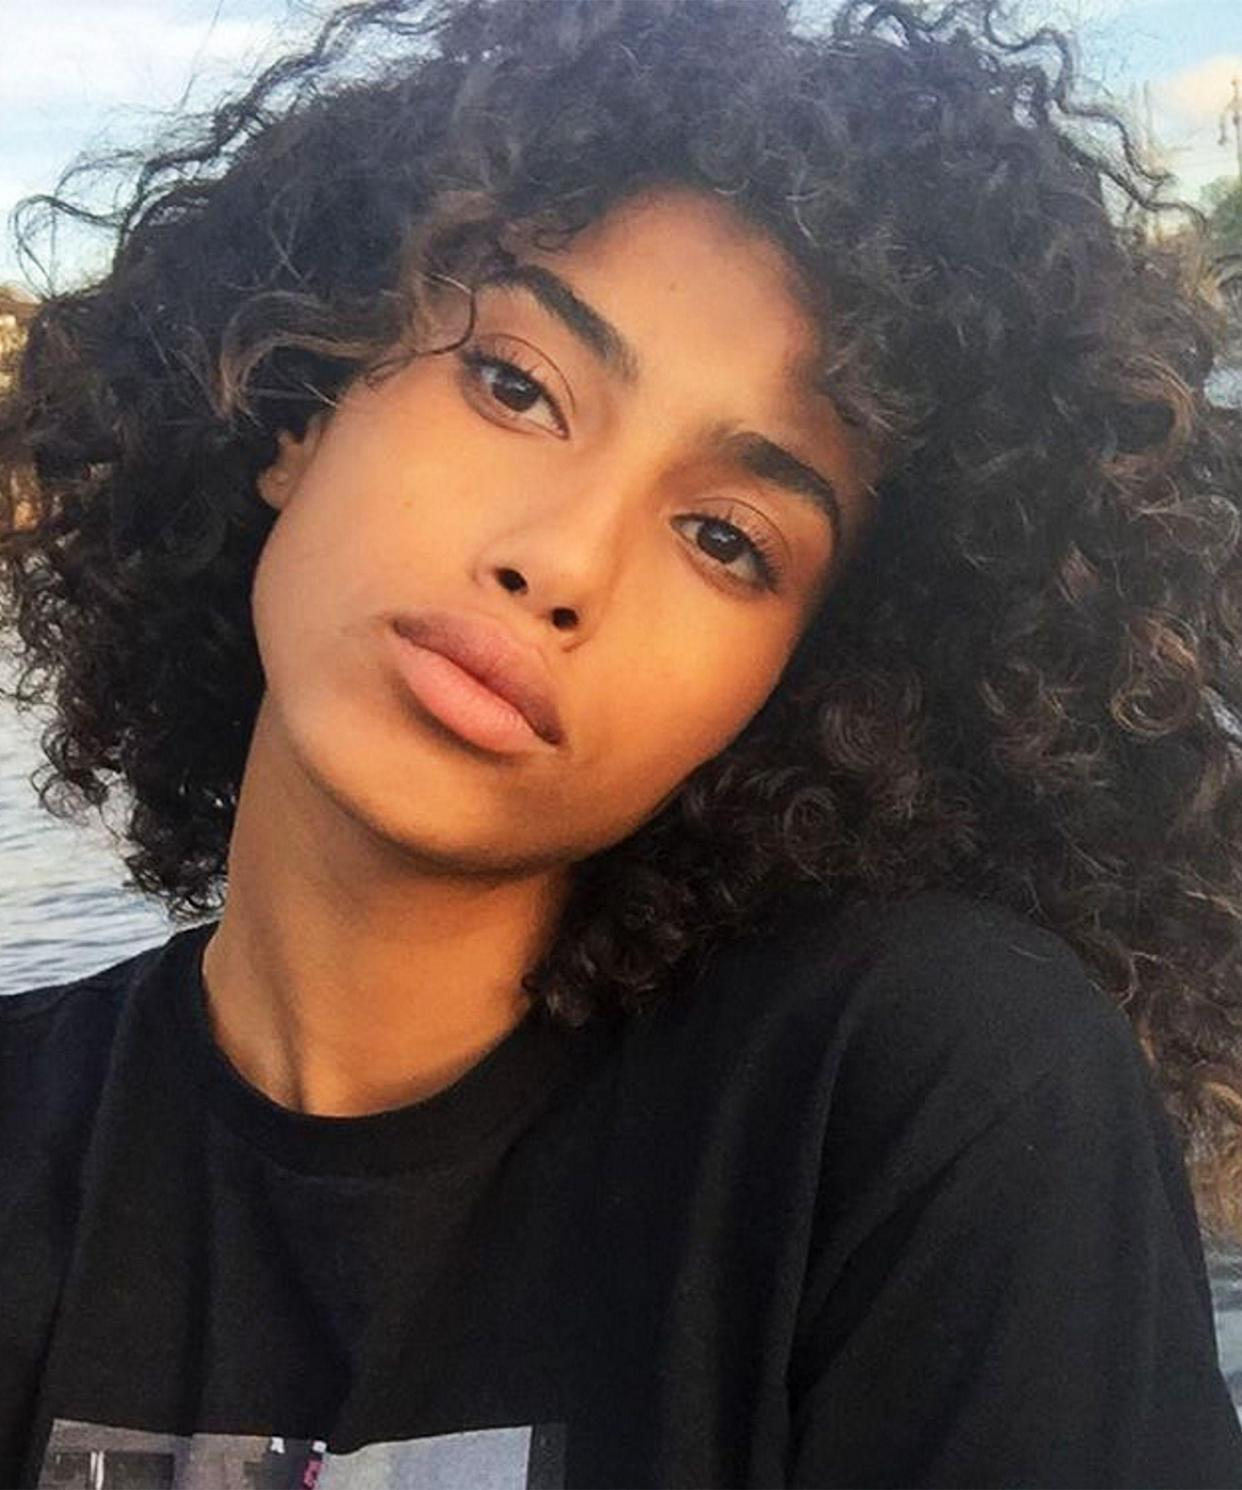 """<p><strong>The Dream Curls</strong></p> <p>Moroccan/Egyptian model, <a href=""""https://www.instagram.com/imaanhammam/"""" rel=""""nofollow noopener"""" target=""""_blank"""" data-ylk=""""slk:Imaan Hammam"""" class=""""link rapid-noclick-resp"""">Imaan Hammam</a>, is killing it on the catwalk right now and for the most part doing so with her natural hair rather than the overly straightened, lacklustre look we're used to. About time fashion brands and magazines celebrated that bounce...</p> <span class=""""copyright"""">Photo: via @imaanhammam.</span>"""